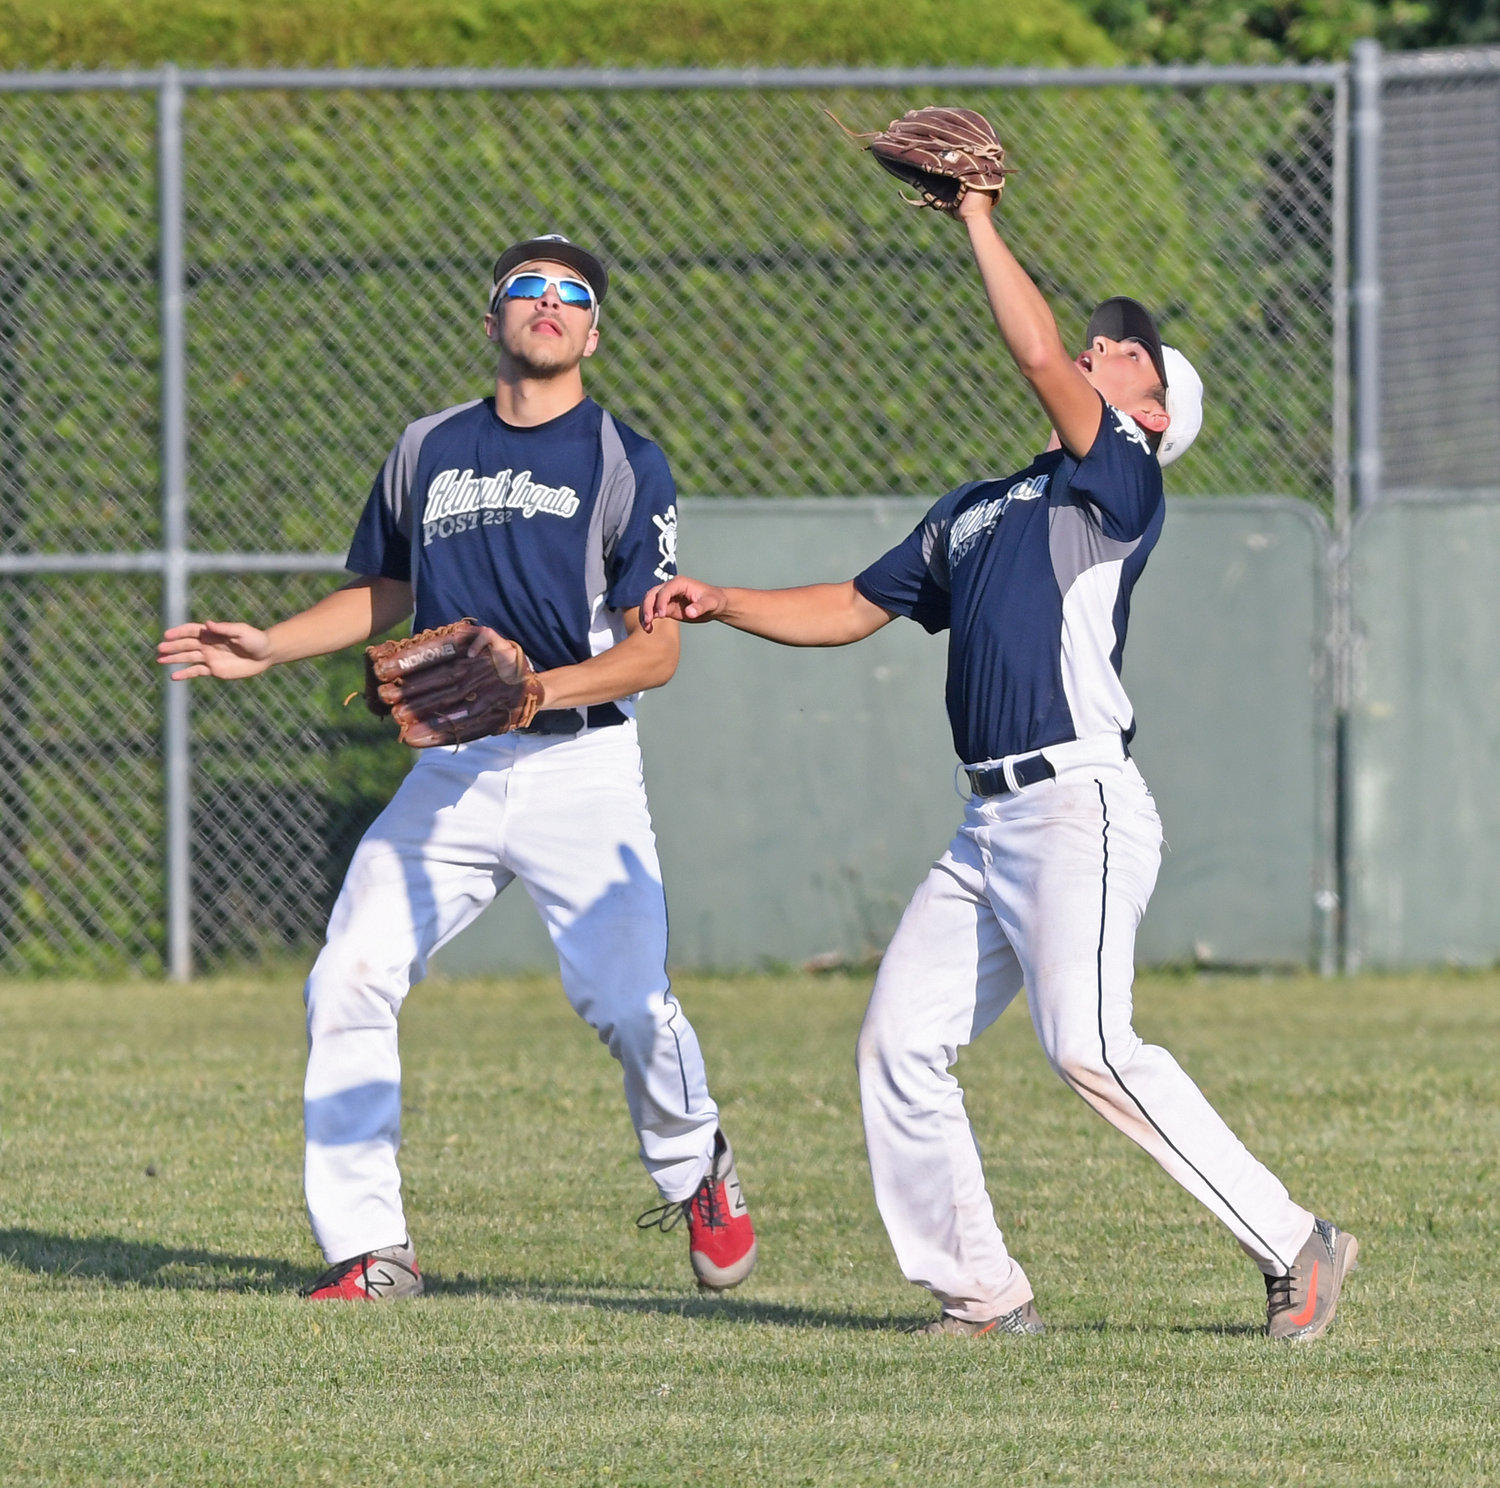 H-I shortstop (right) and left fielder #17 almost collide on a fly ball.